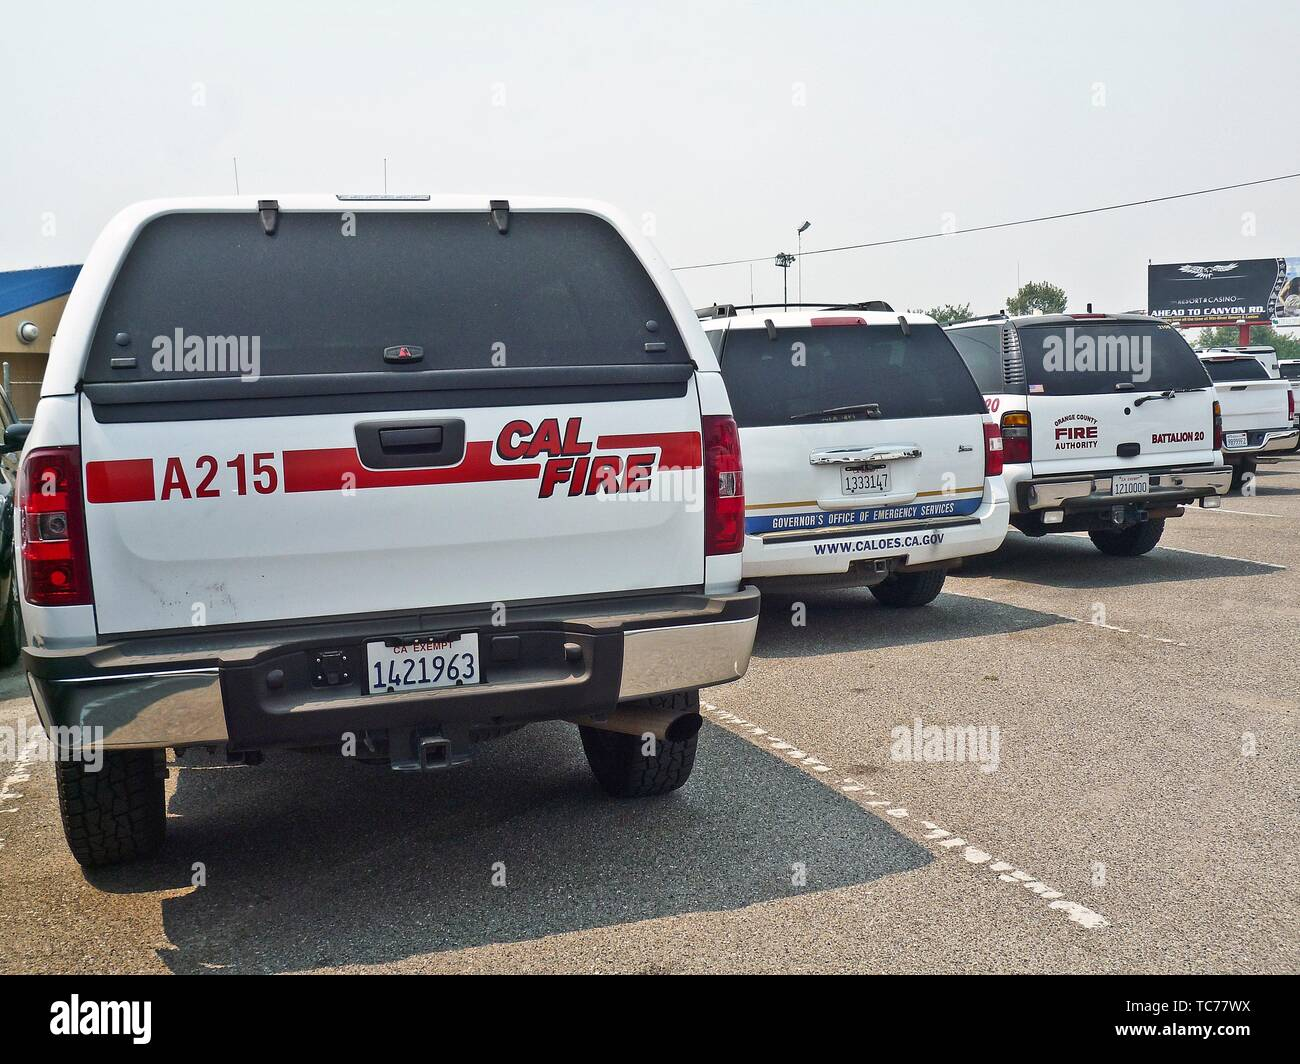 Fire support vehicles parked at a staging area in the Shasta County Fair Grounds in Anderson, California during the Carr Fire of 2018. - Stock Image